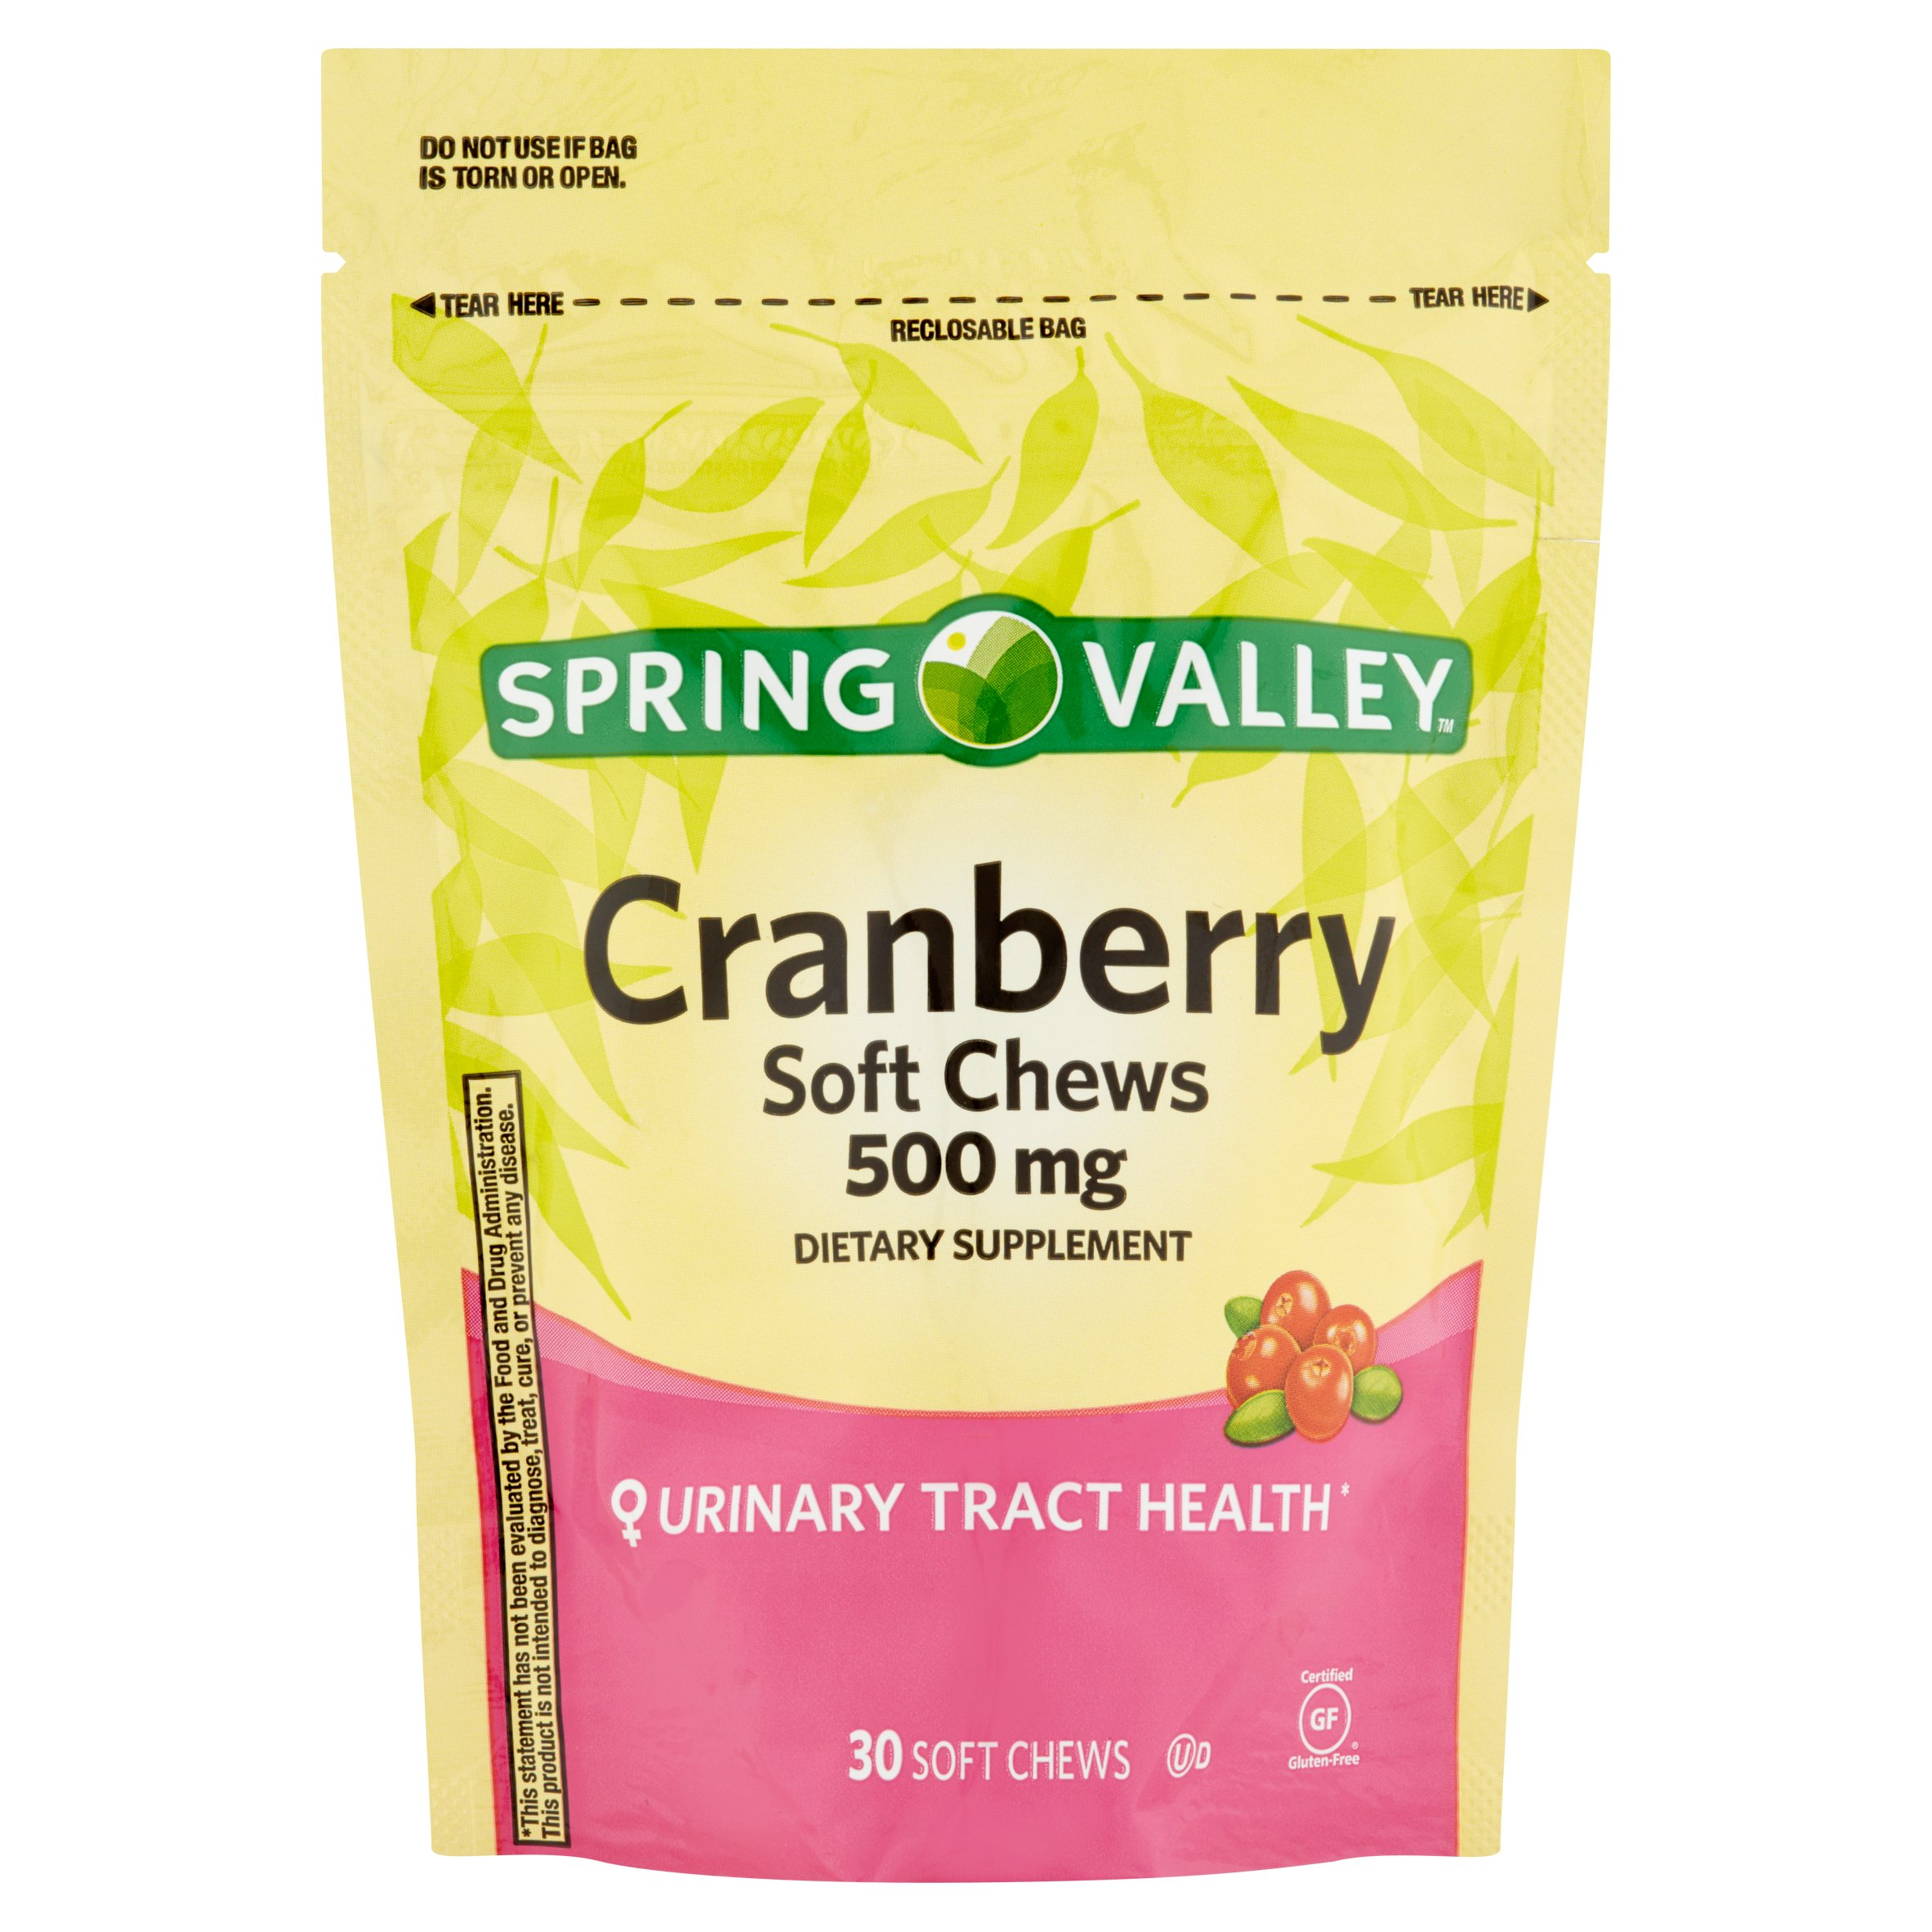 Spring Valley Cranberry Soft Chews, 500 mg, 30 Ct